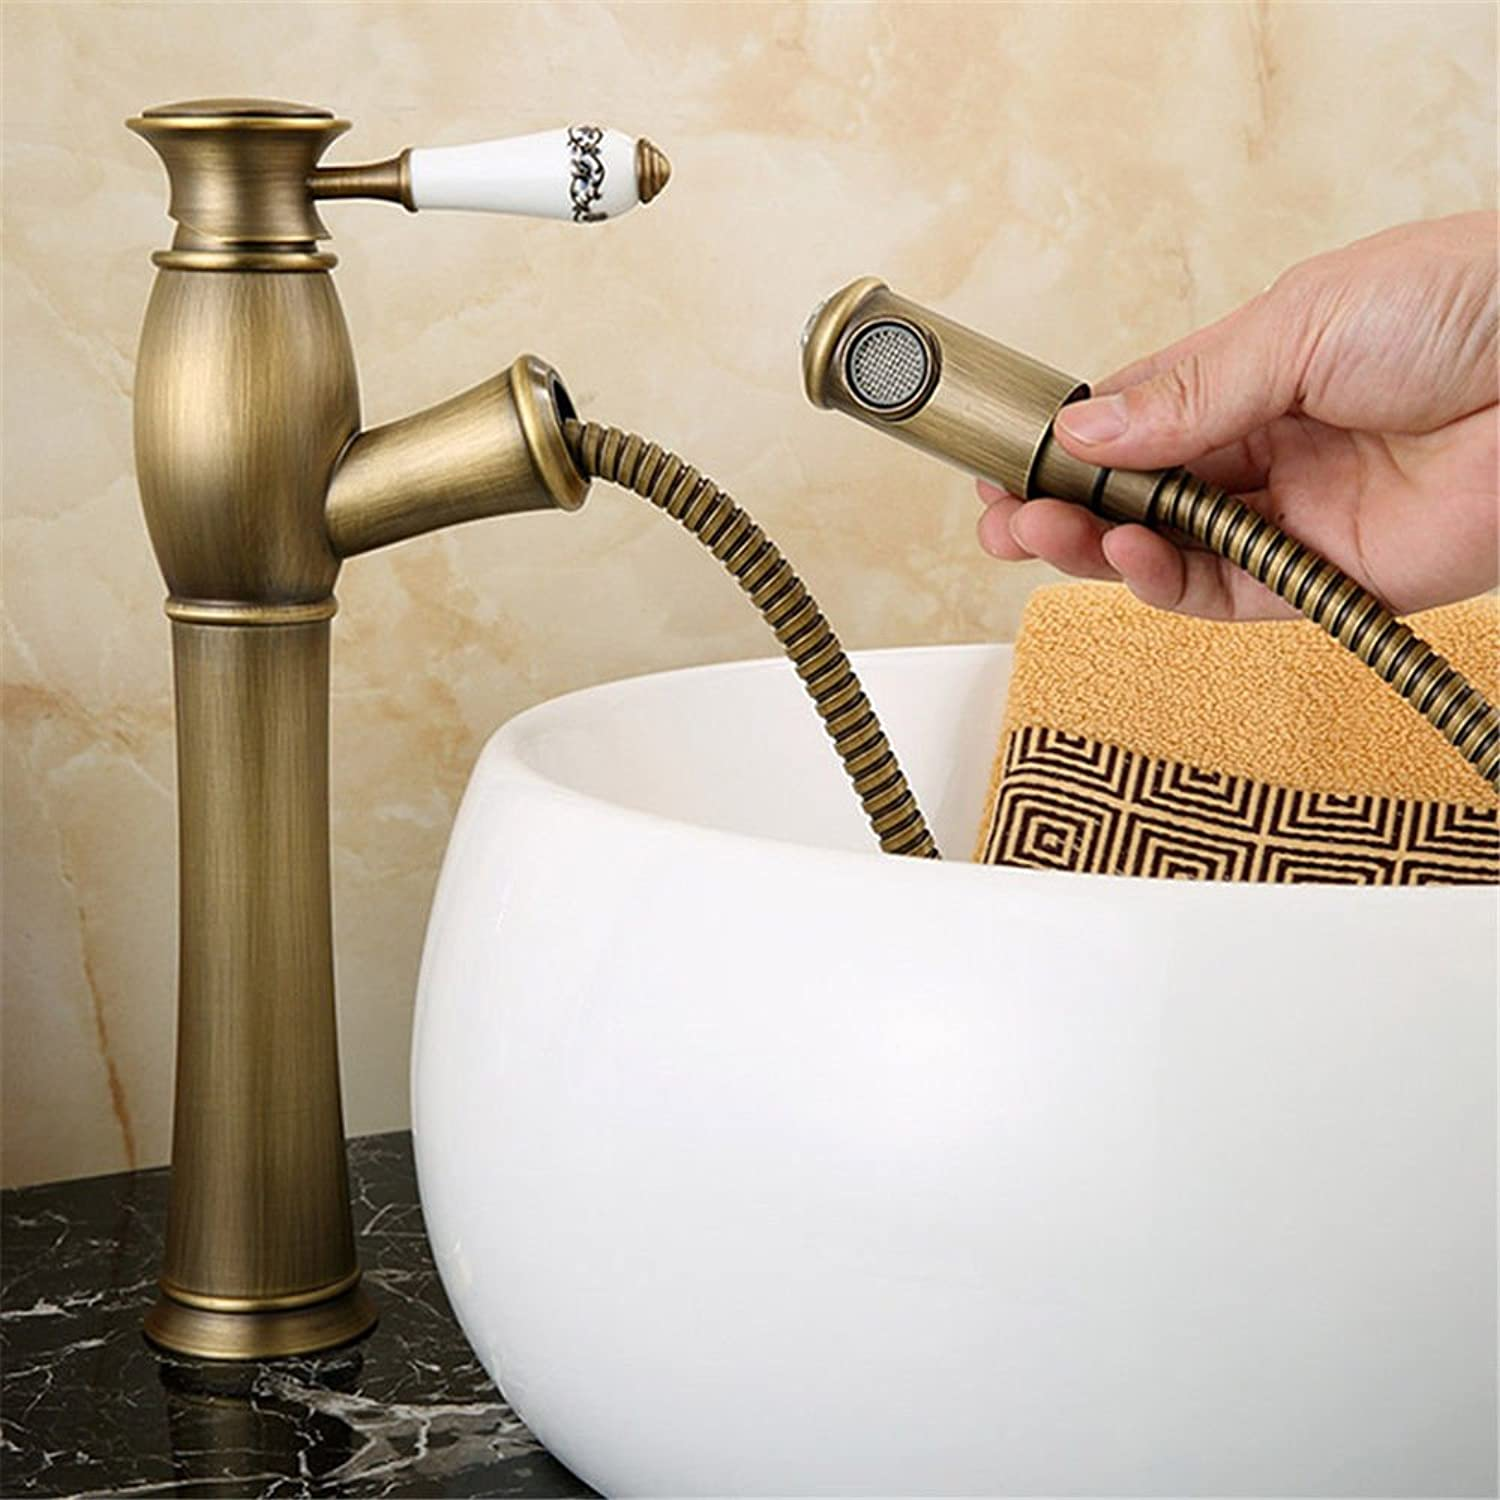 ETERNAL QUALITY Bathroom Sink Basin Tap Brass Mixer Tap Washroom Mixer Faucet The copper and high surface basin draw-down basin sink,hot and cold water faucets antique Ki